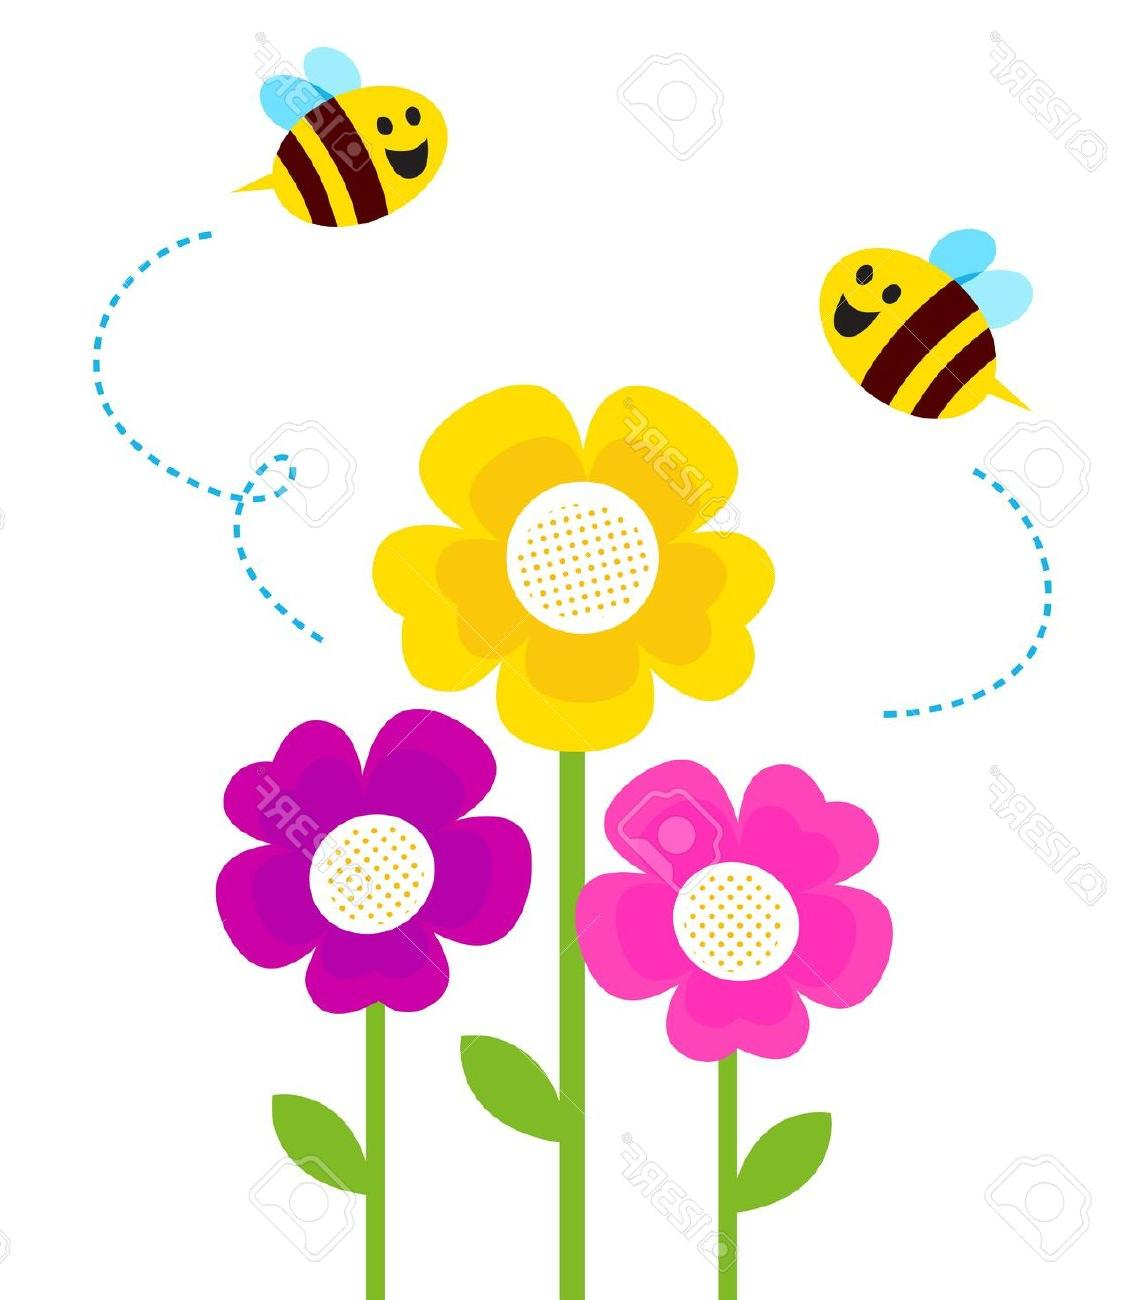 10 flowers clipart jpg royalty free download Top 10 Flowers And Bees Clipart Photos jpg royalty free download